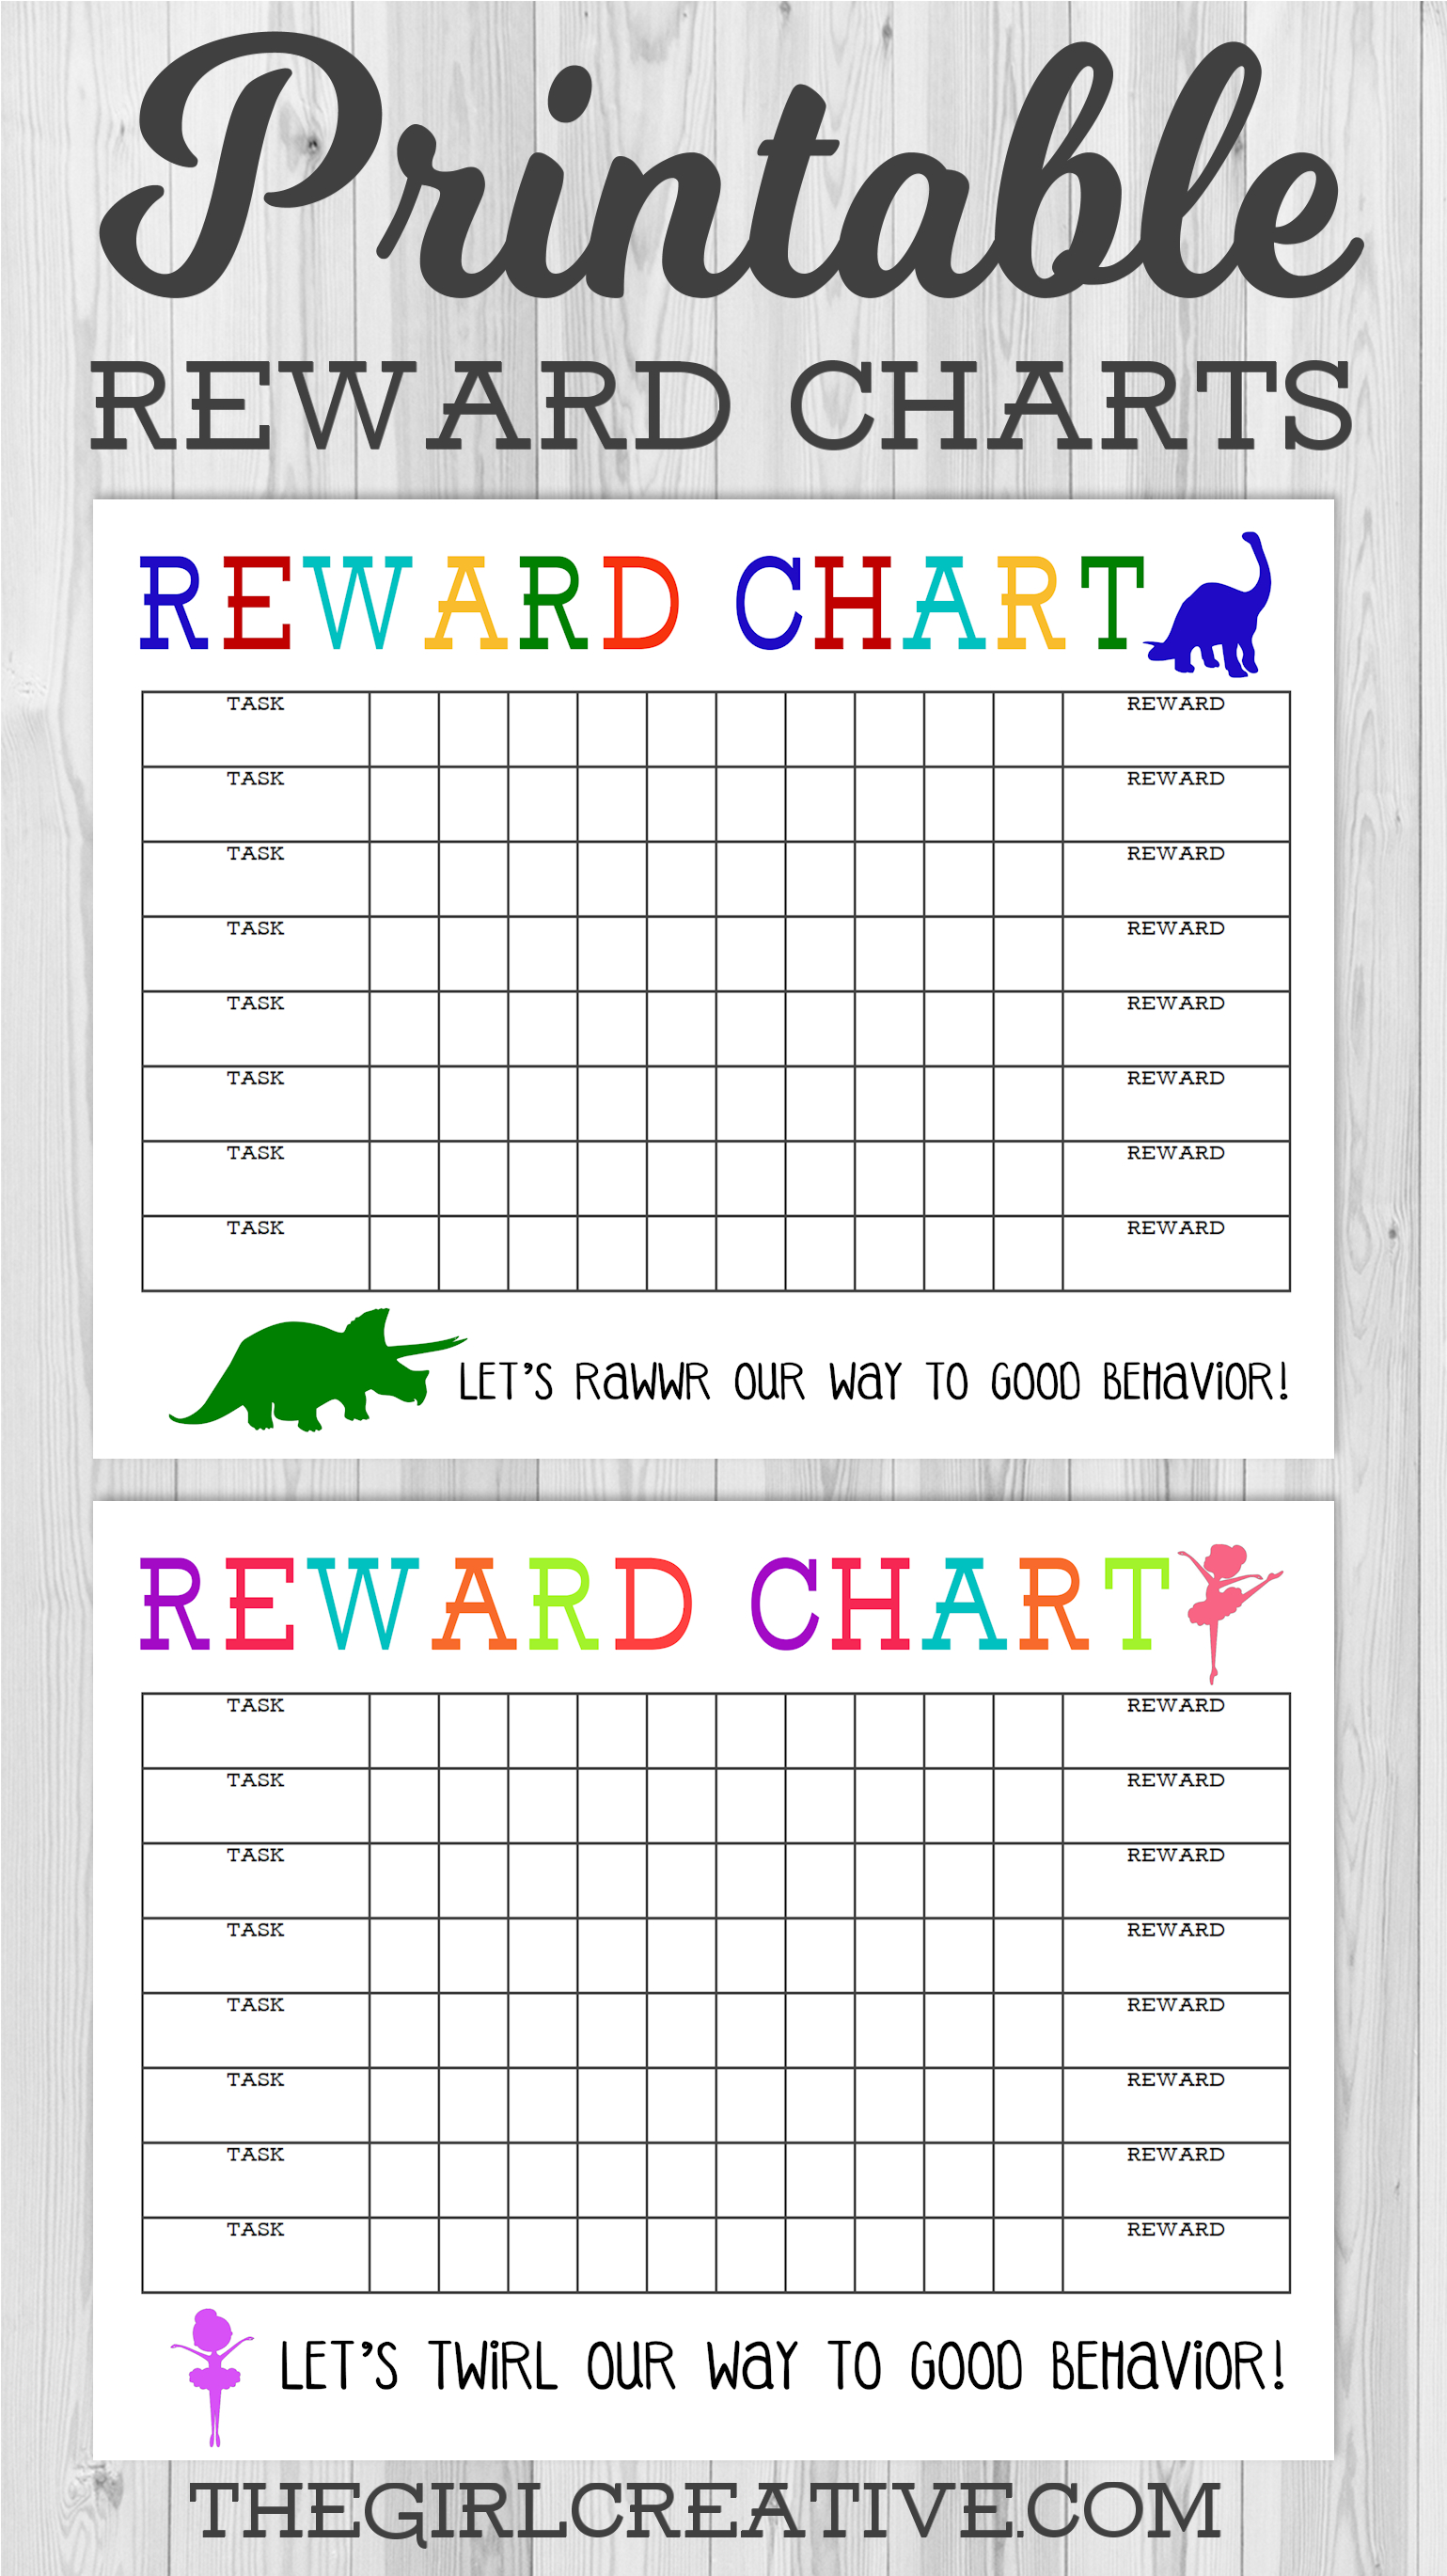 Printable Reward Chart - The Girl Creative - Free Printable Reward Charts